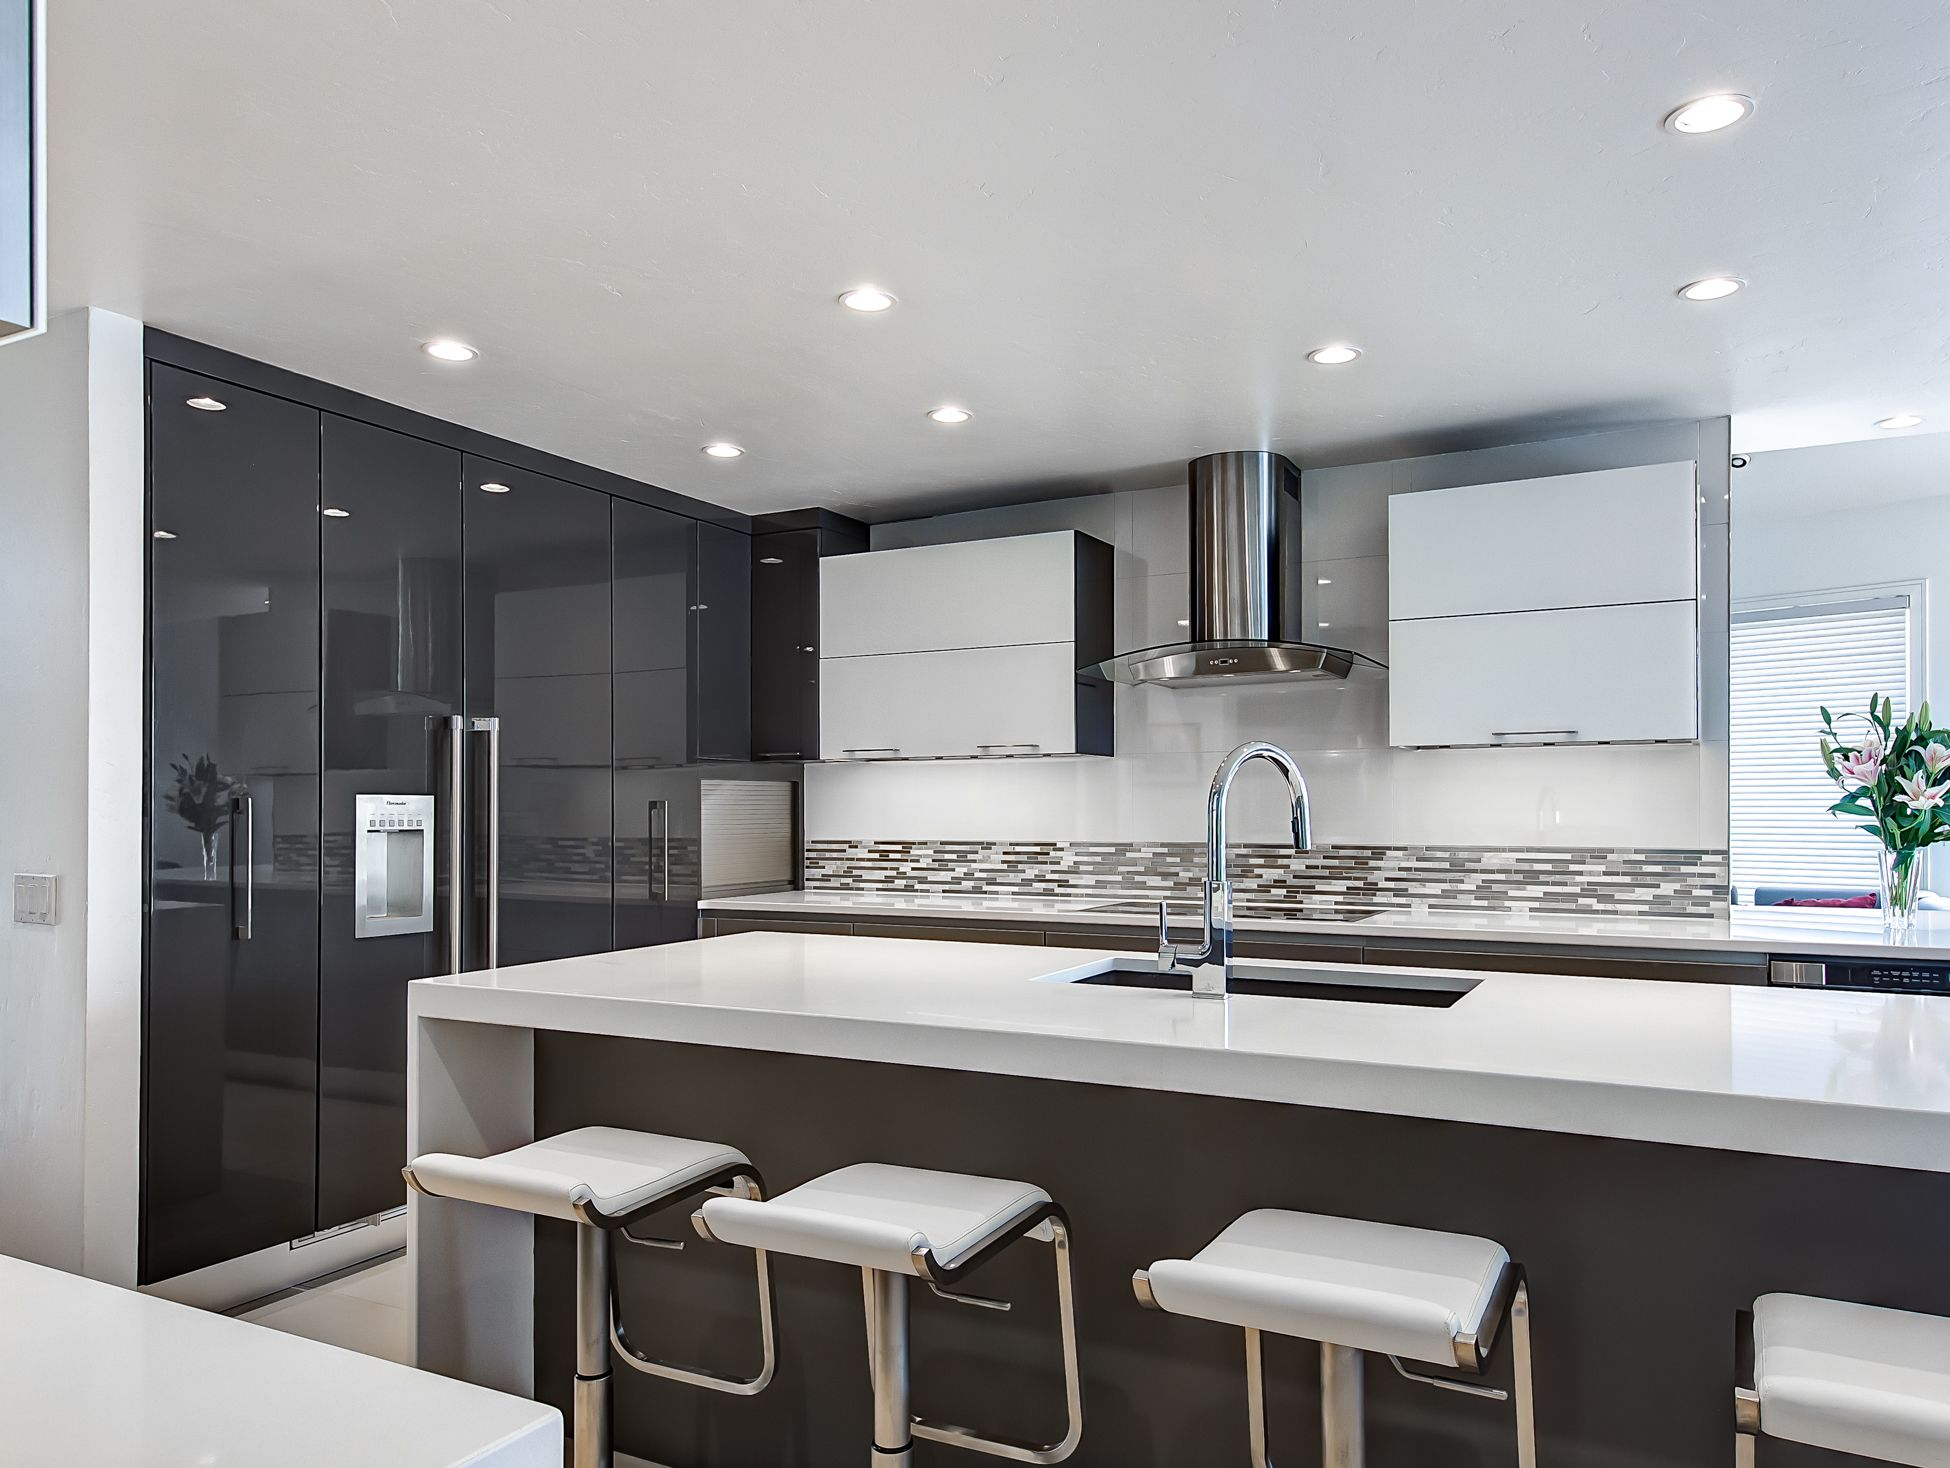 high gloss white quartz countertops, waterfall